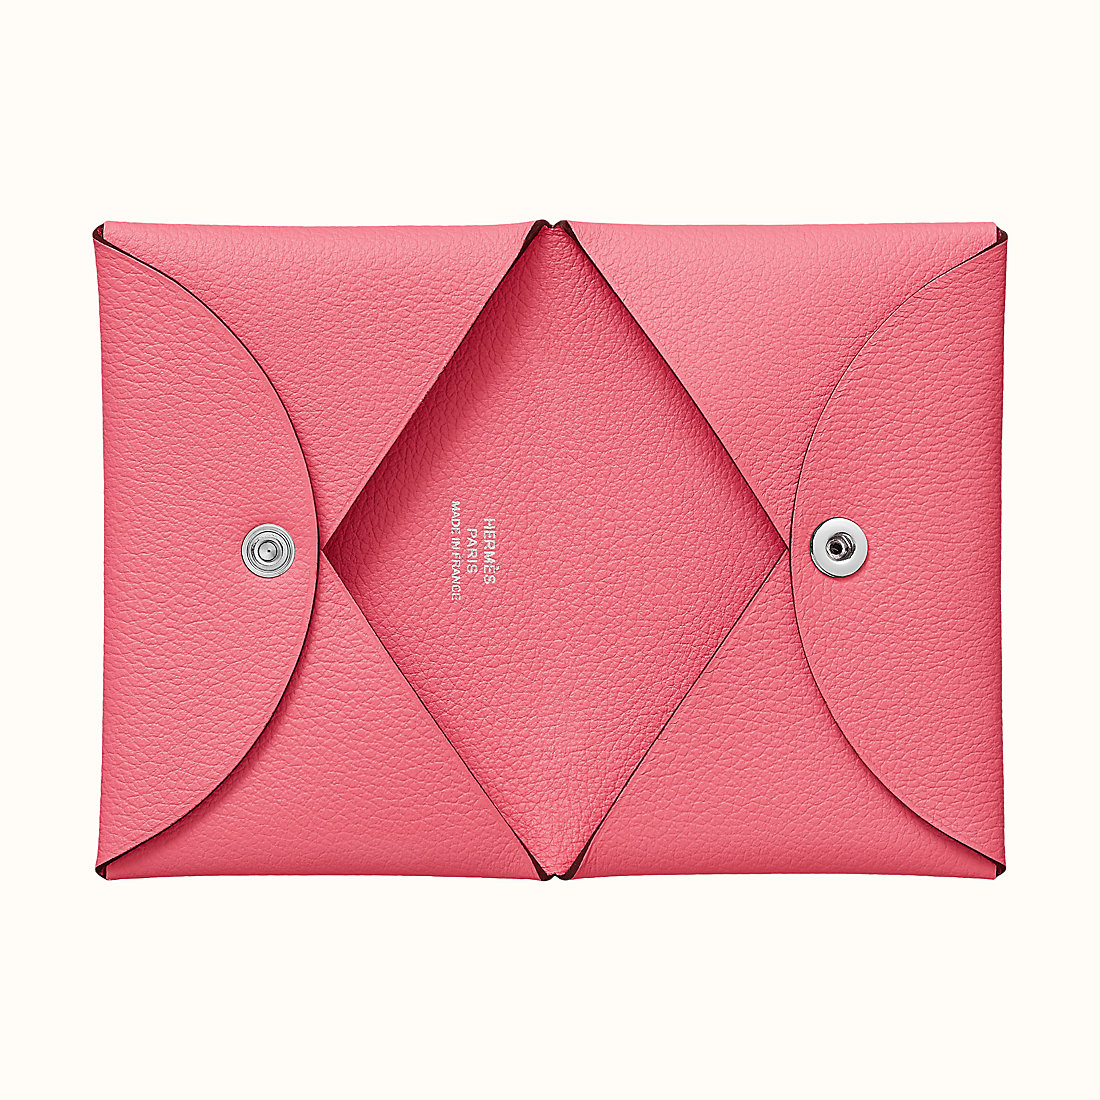 Hermes Evercolor Calvi verso card holder CK8W Rose Azalee